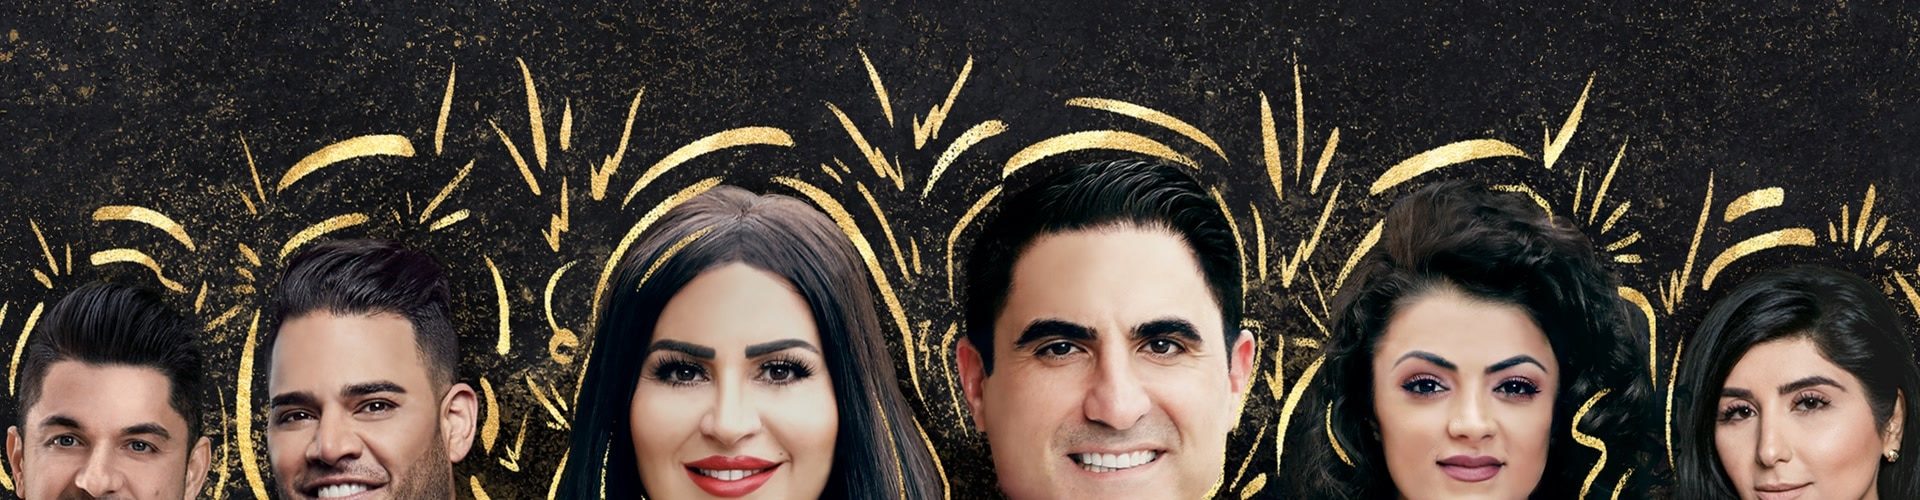 Watch Shahs of Sunset - Specials Online